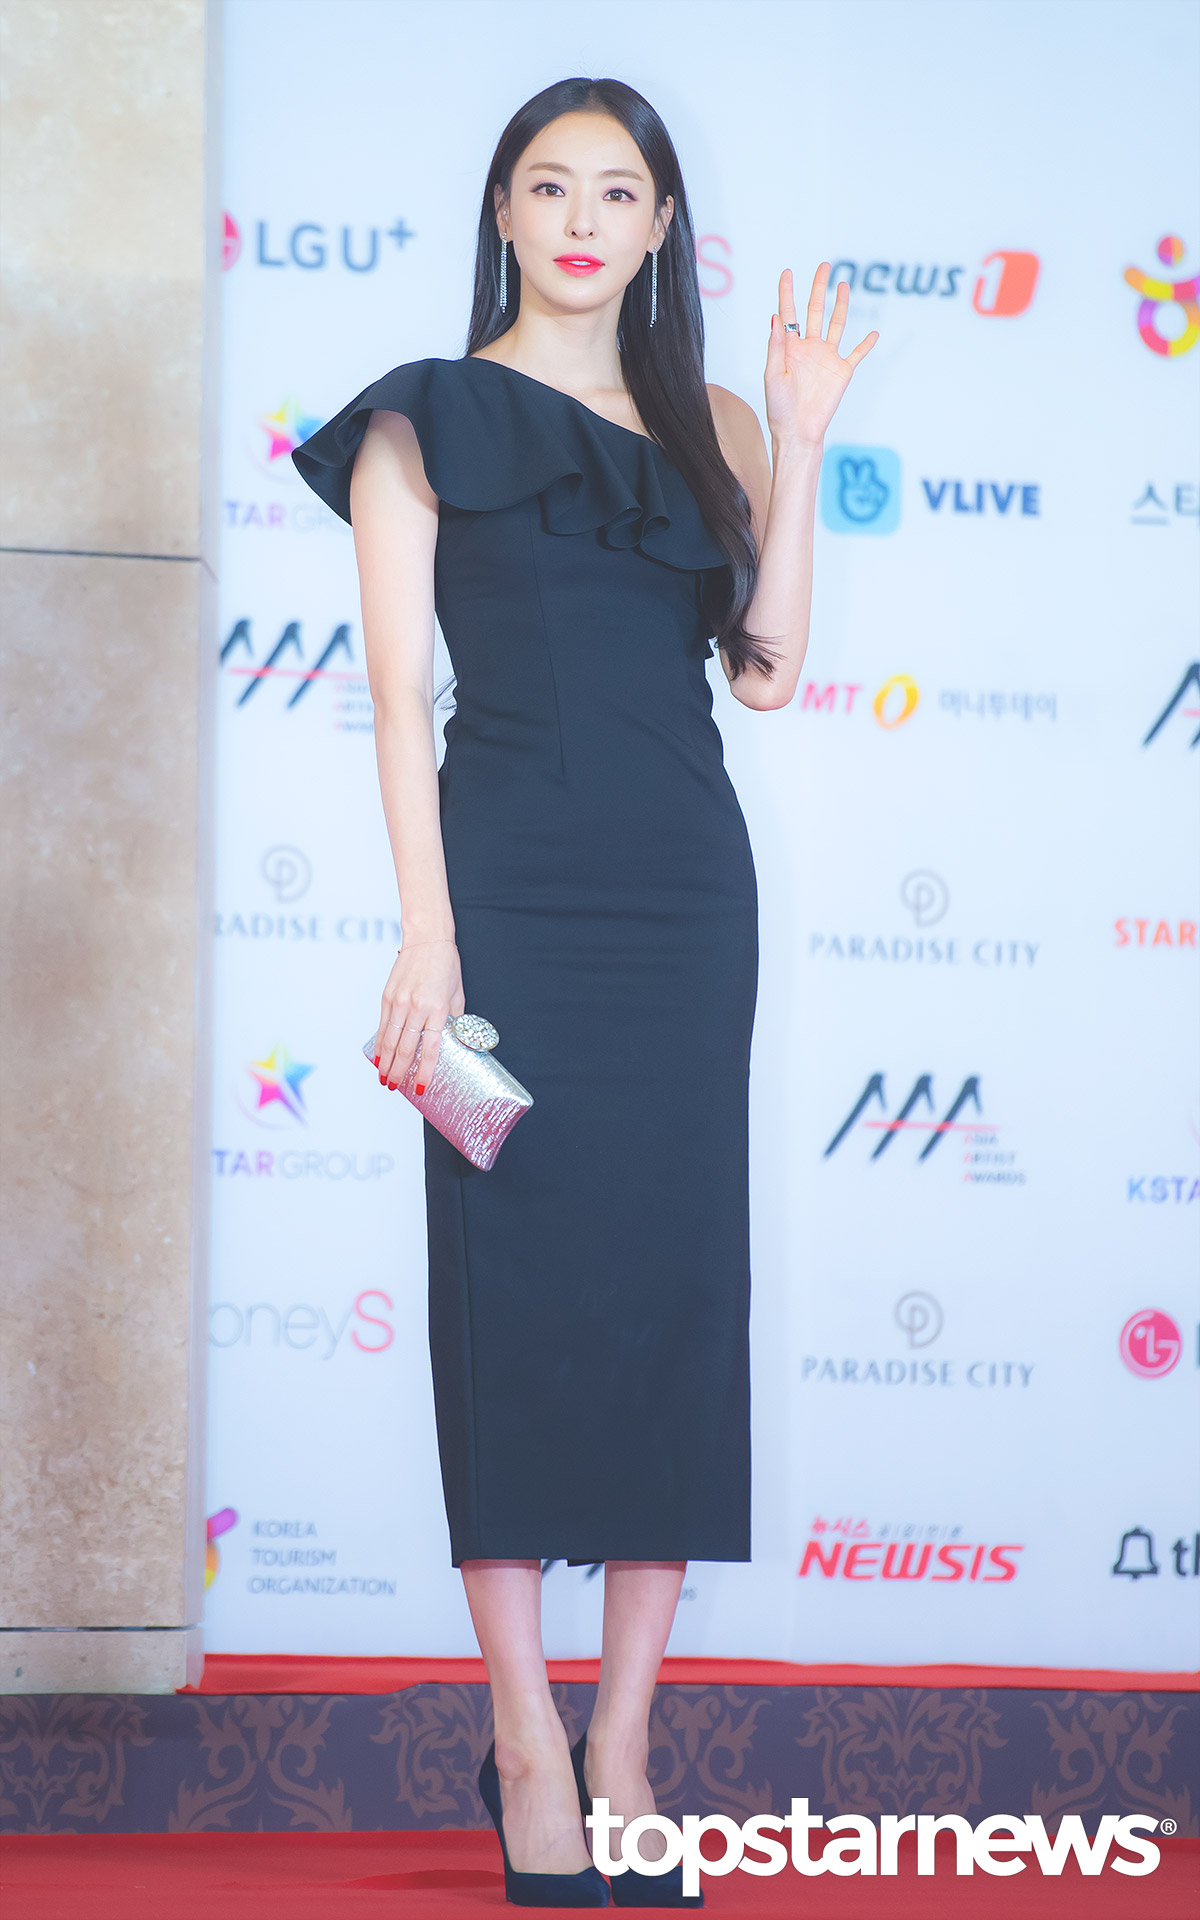 best korean celeb outfit, korean actors fashion, lee dahee